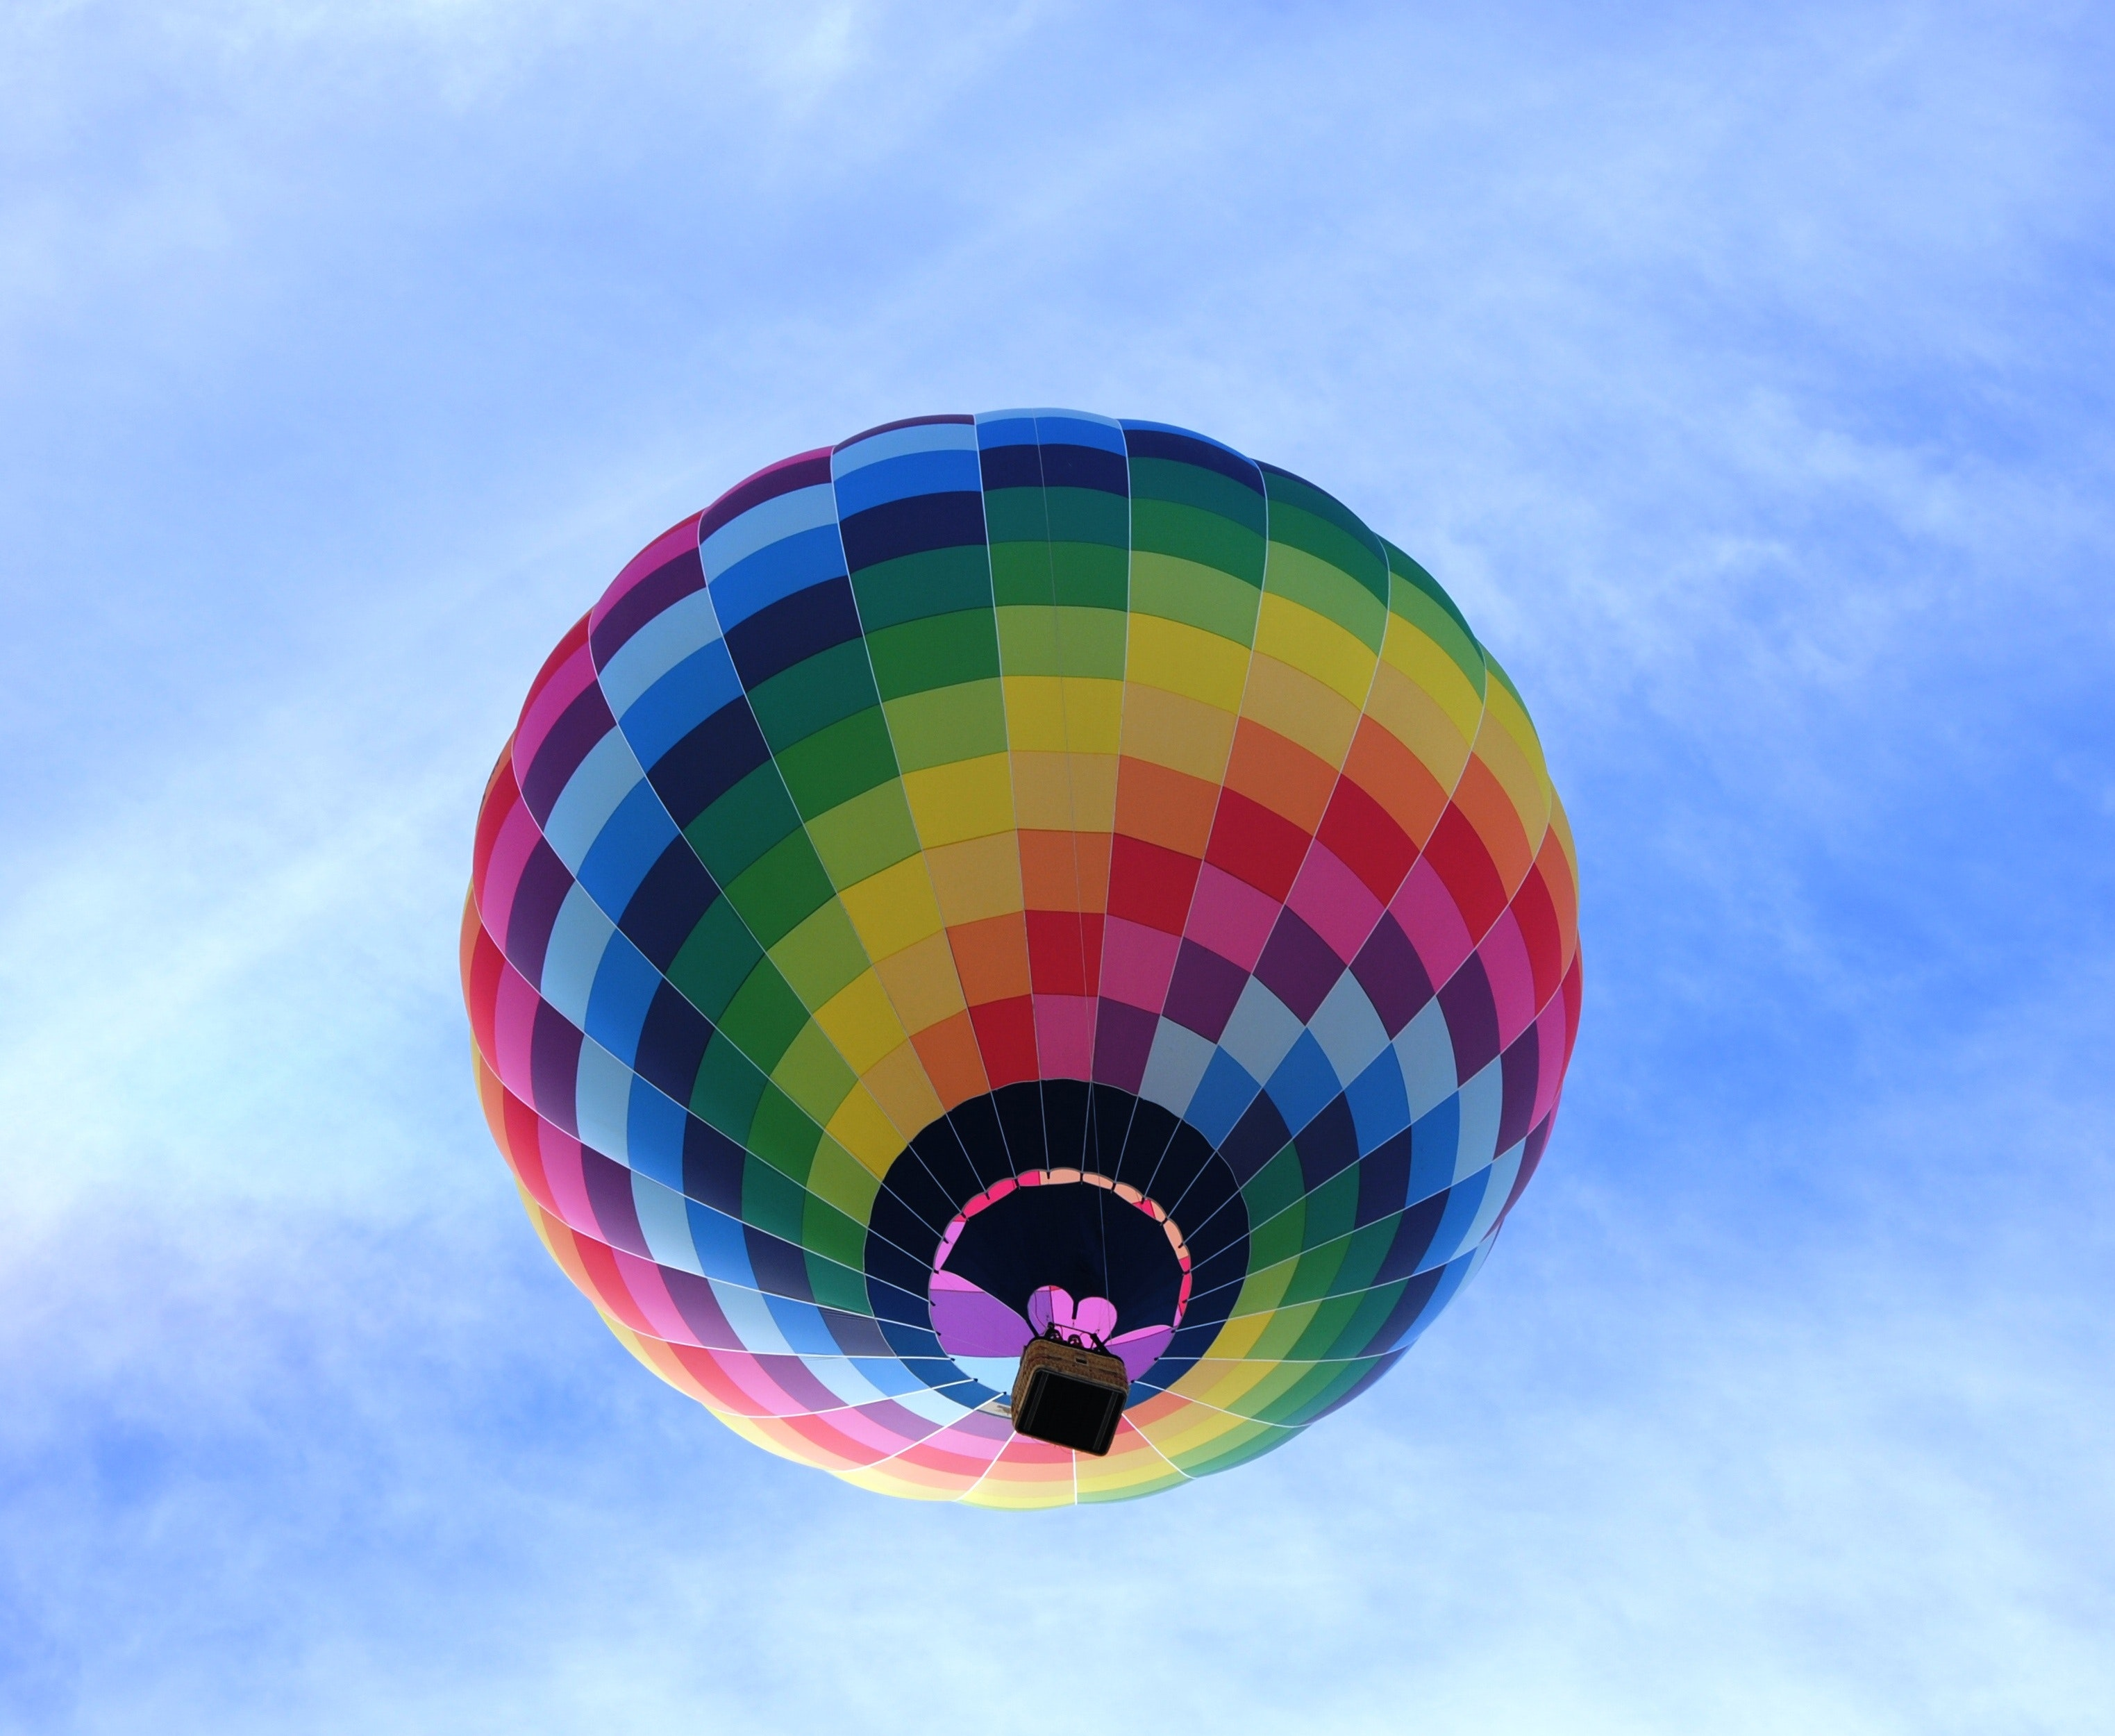 Hot Air Balloon Flying Under Blue Sky during Daytime, Adventure, Travel, Soar, Shapes, HQ Photo